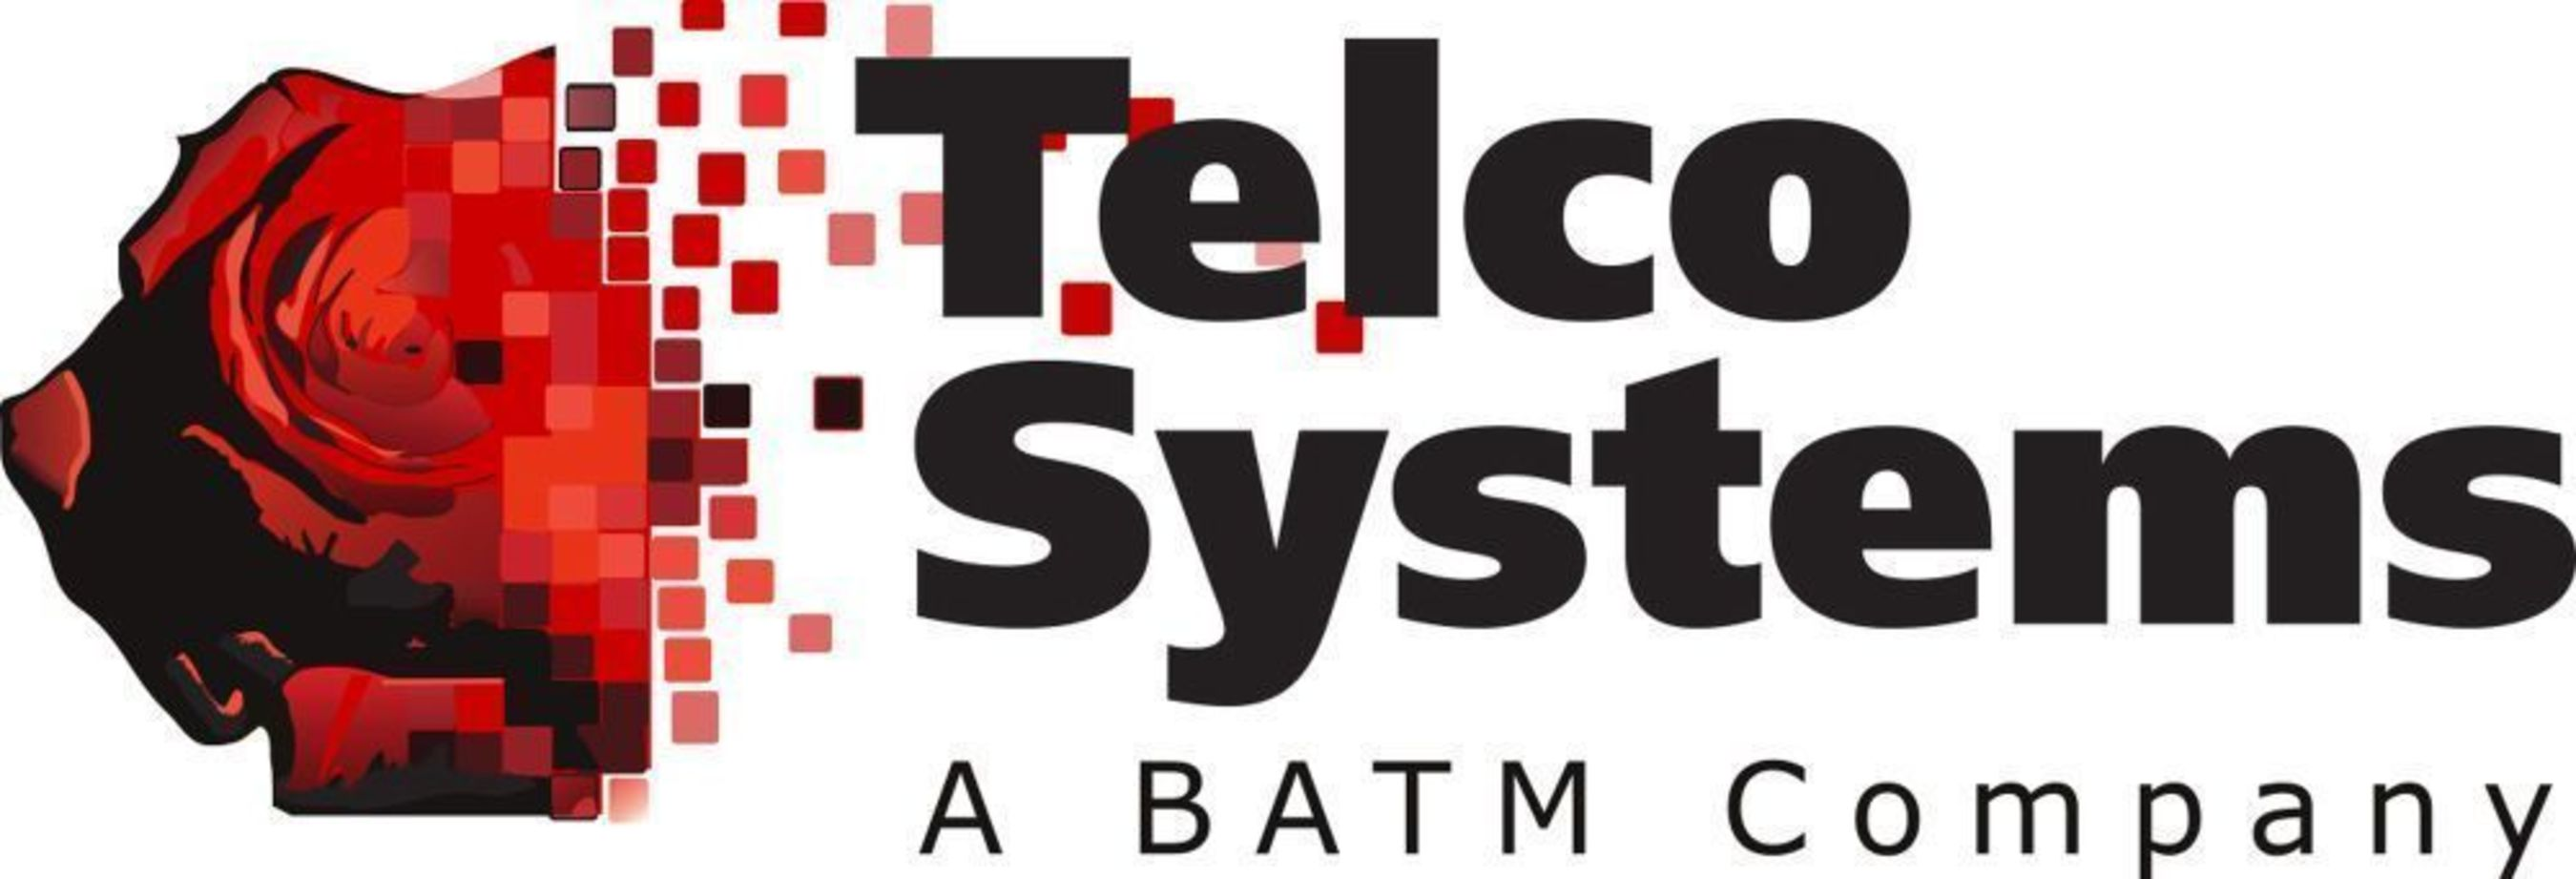 Telco Systems' CloudMetro vCPE Platform Demonstrates Carrier-Grade Performance and Multi-VNF Service Chaining